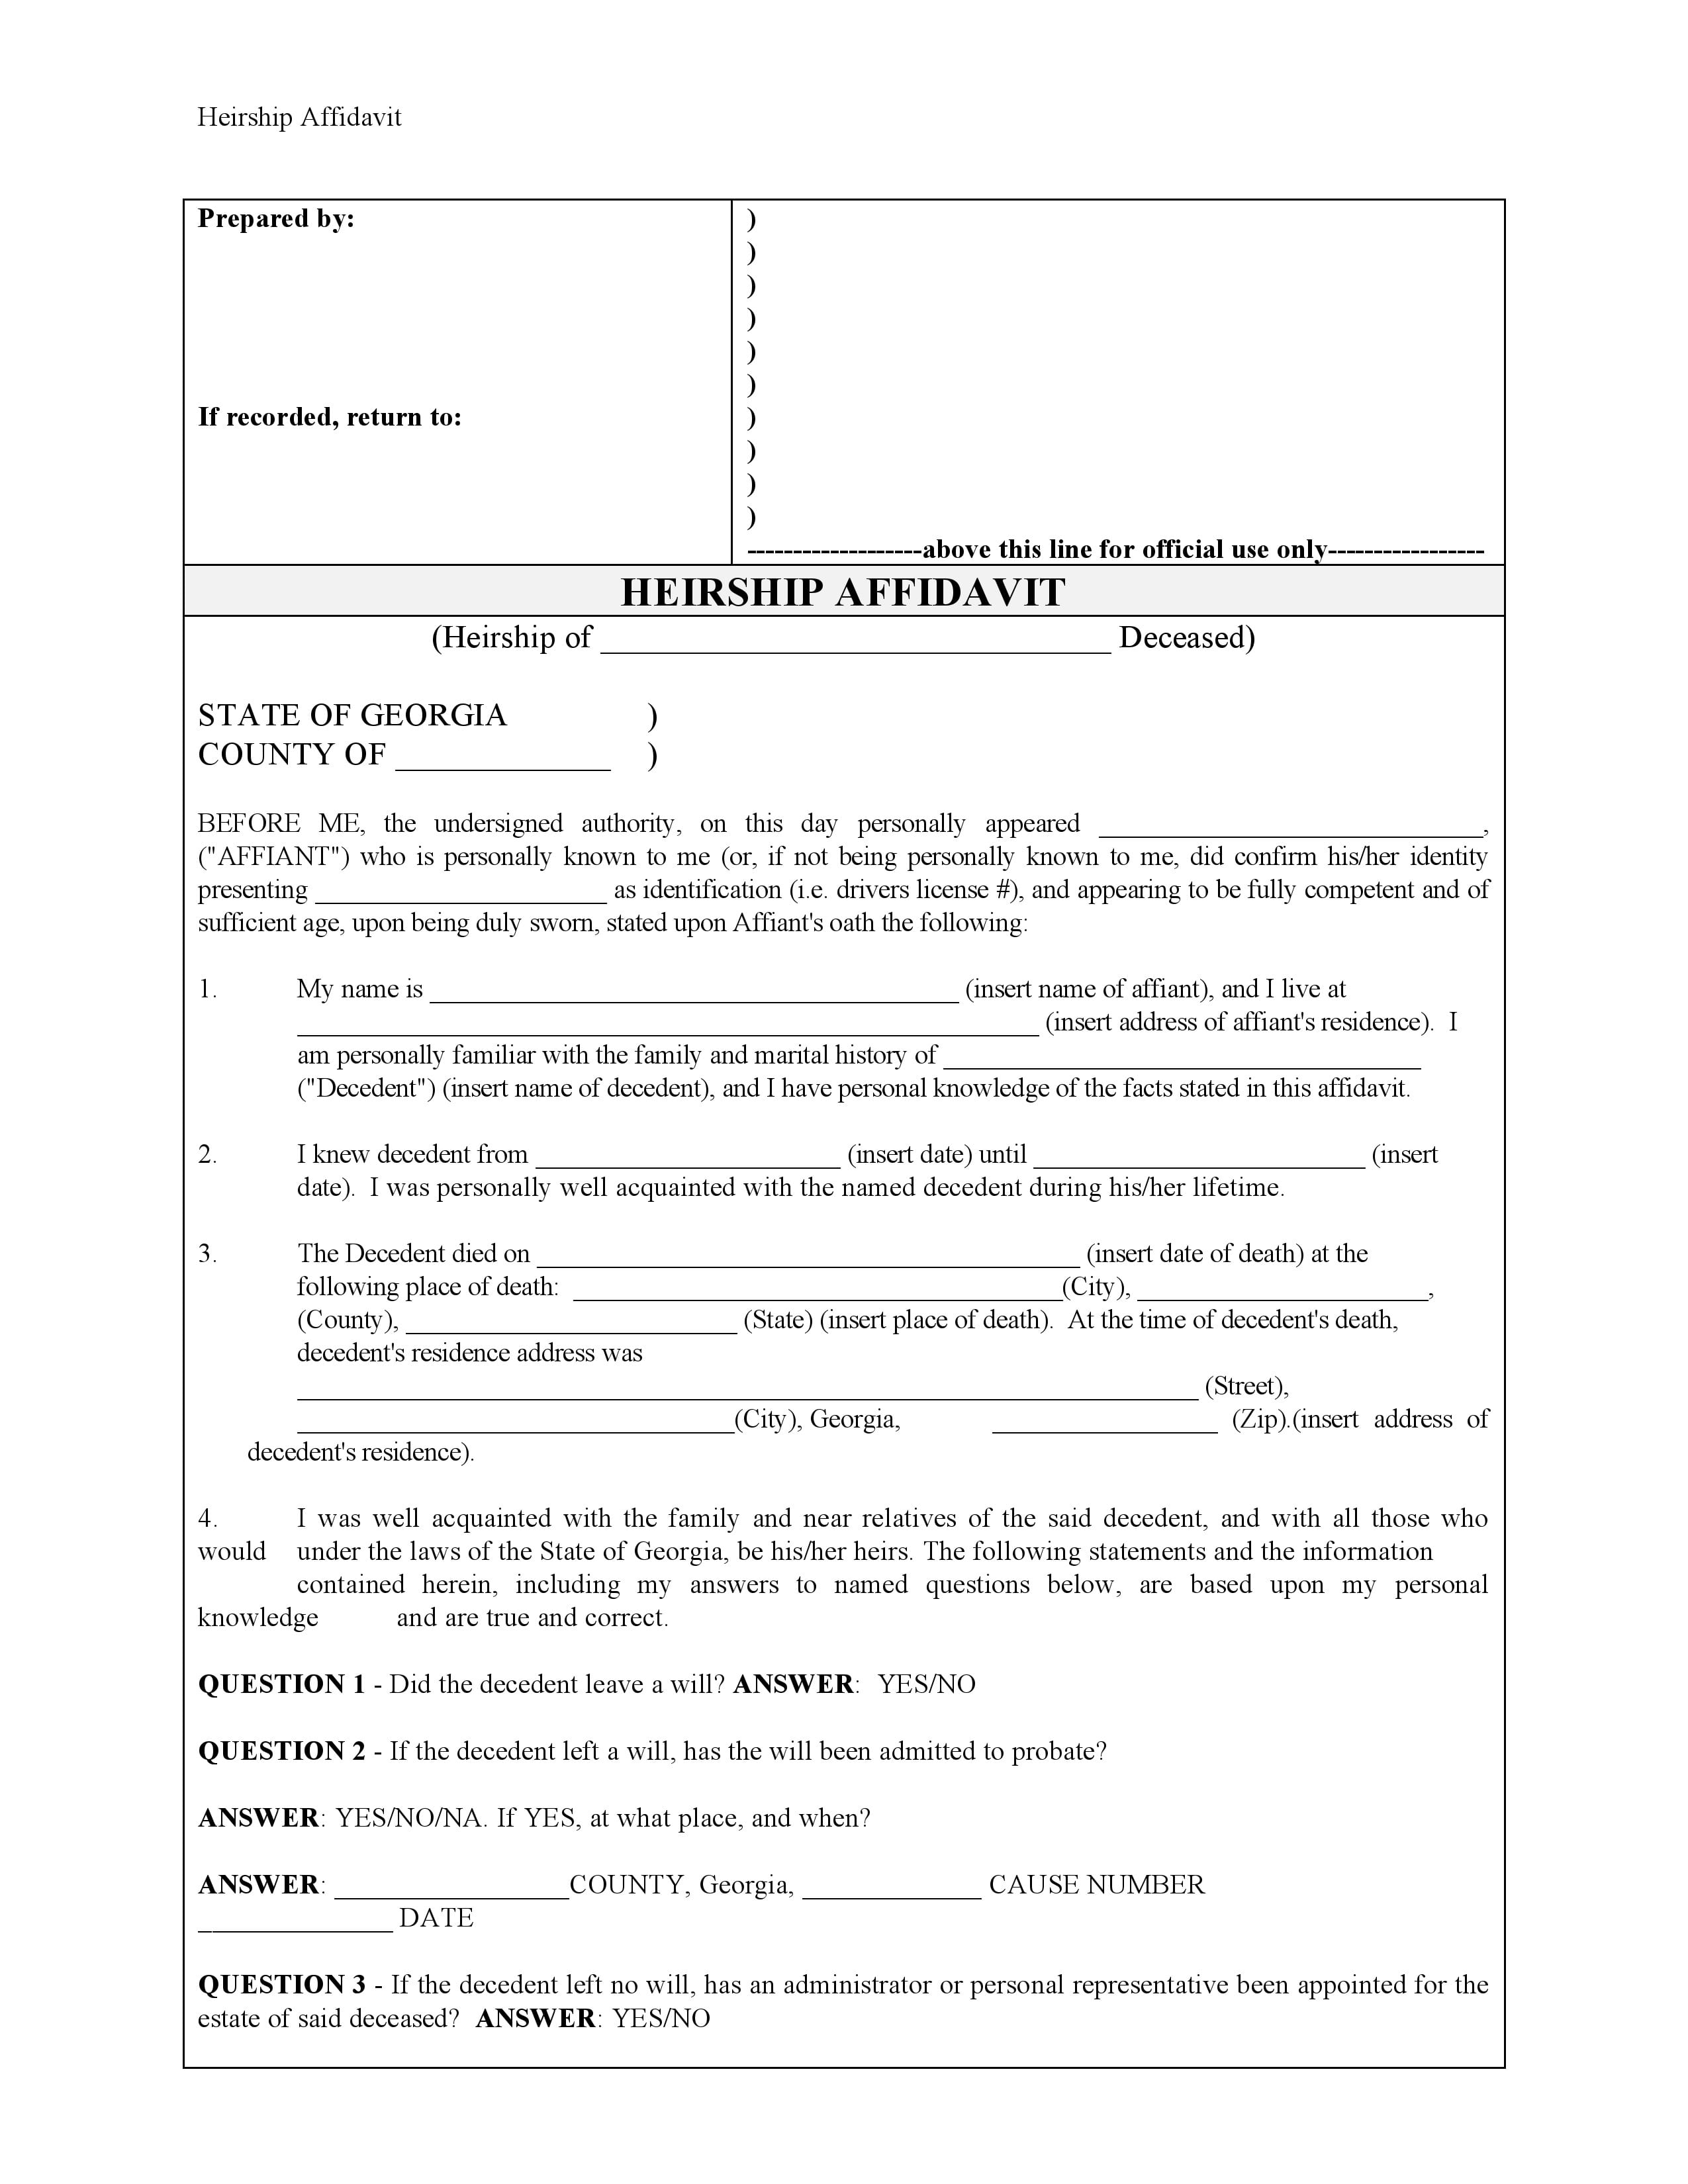 Georgia Affidavit Of Heirship